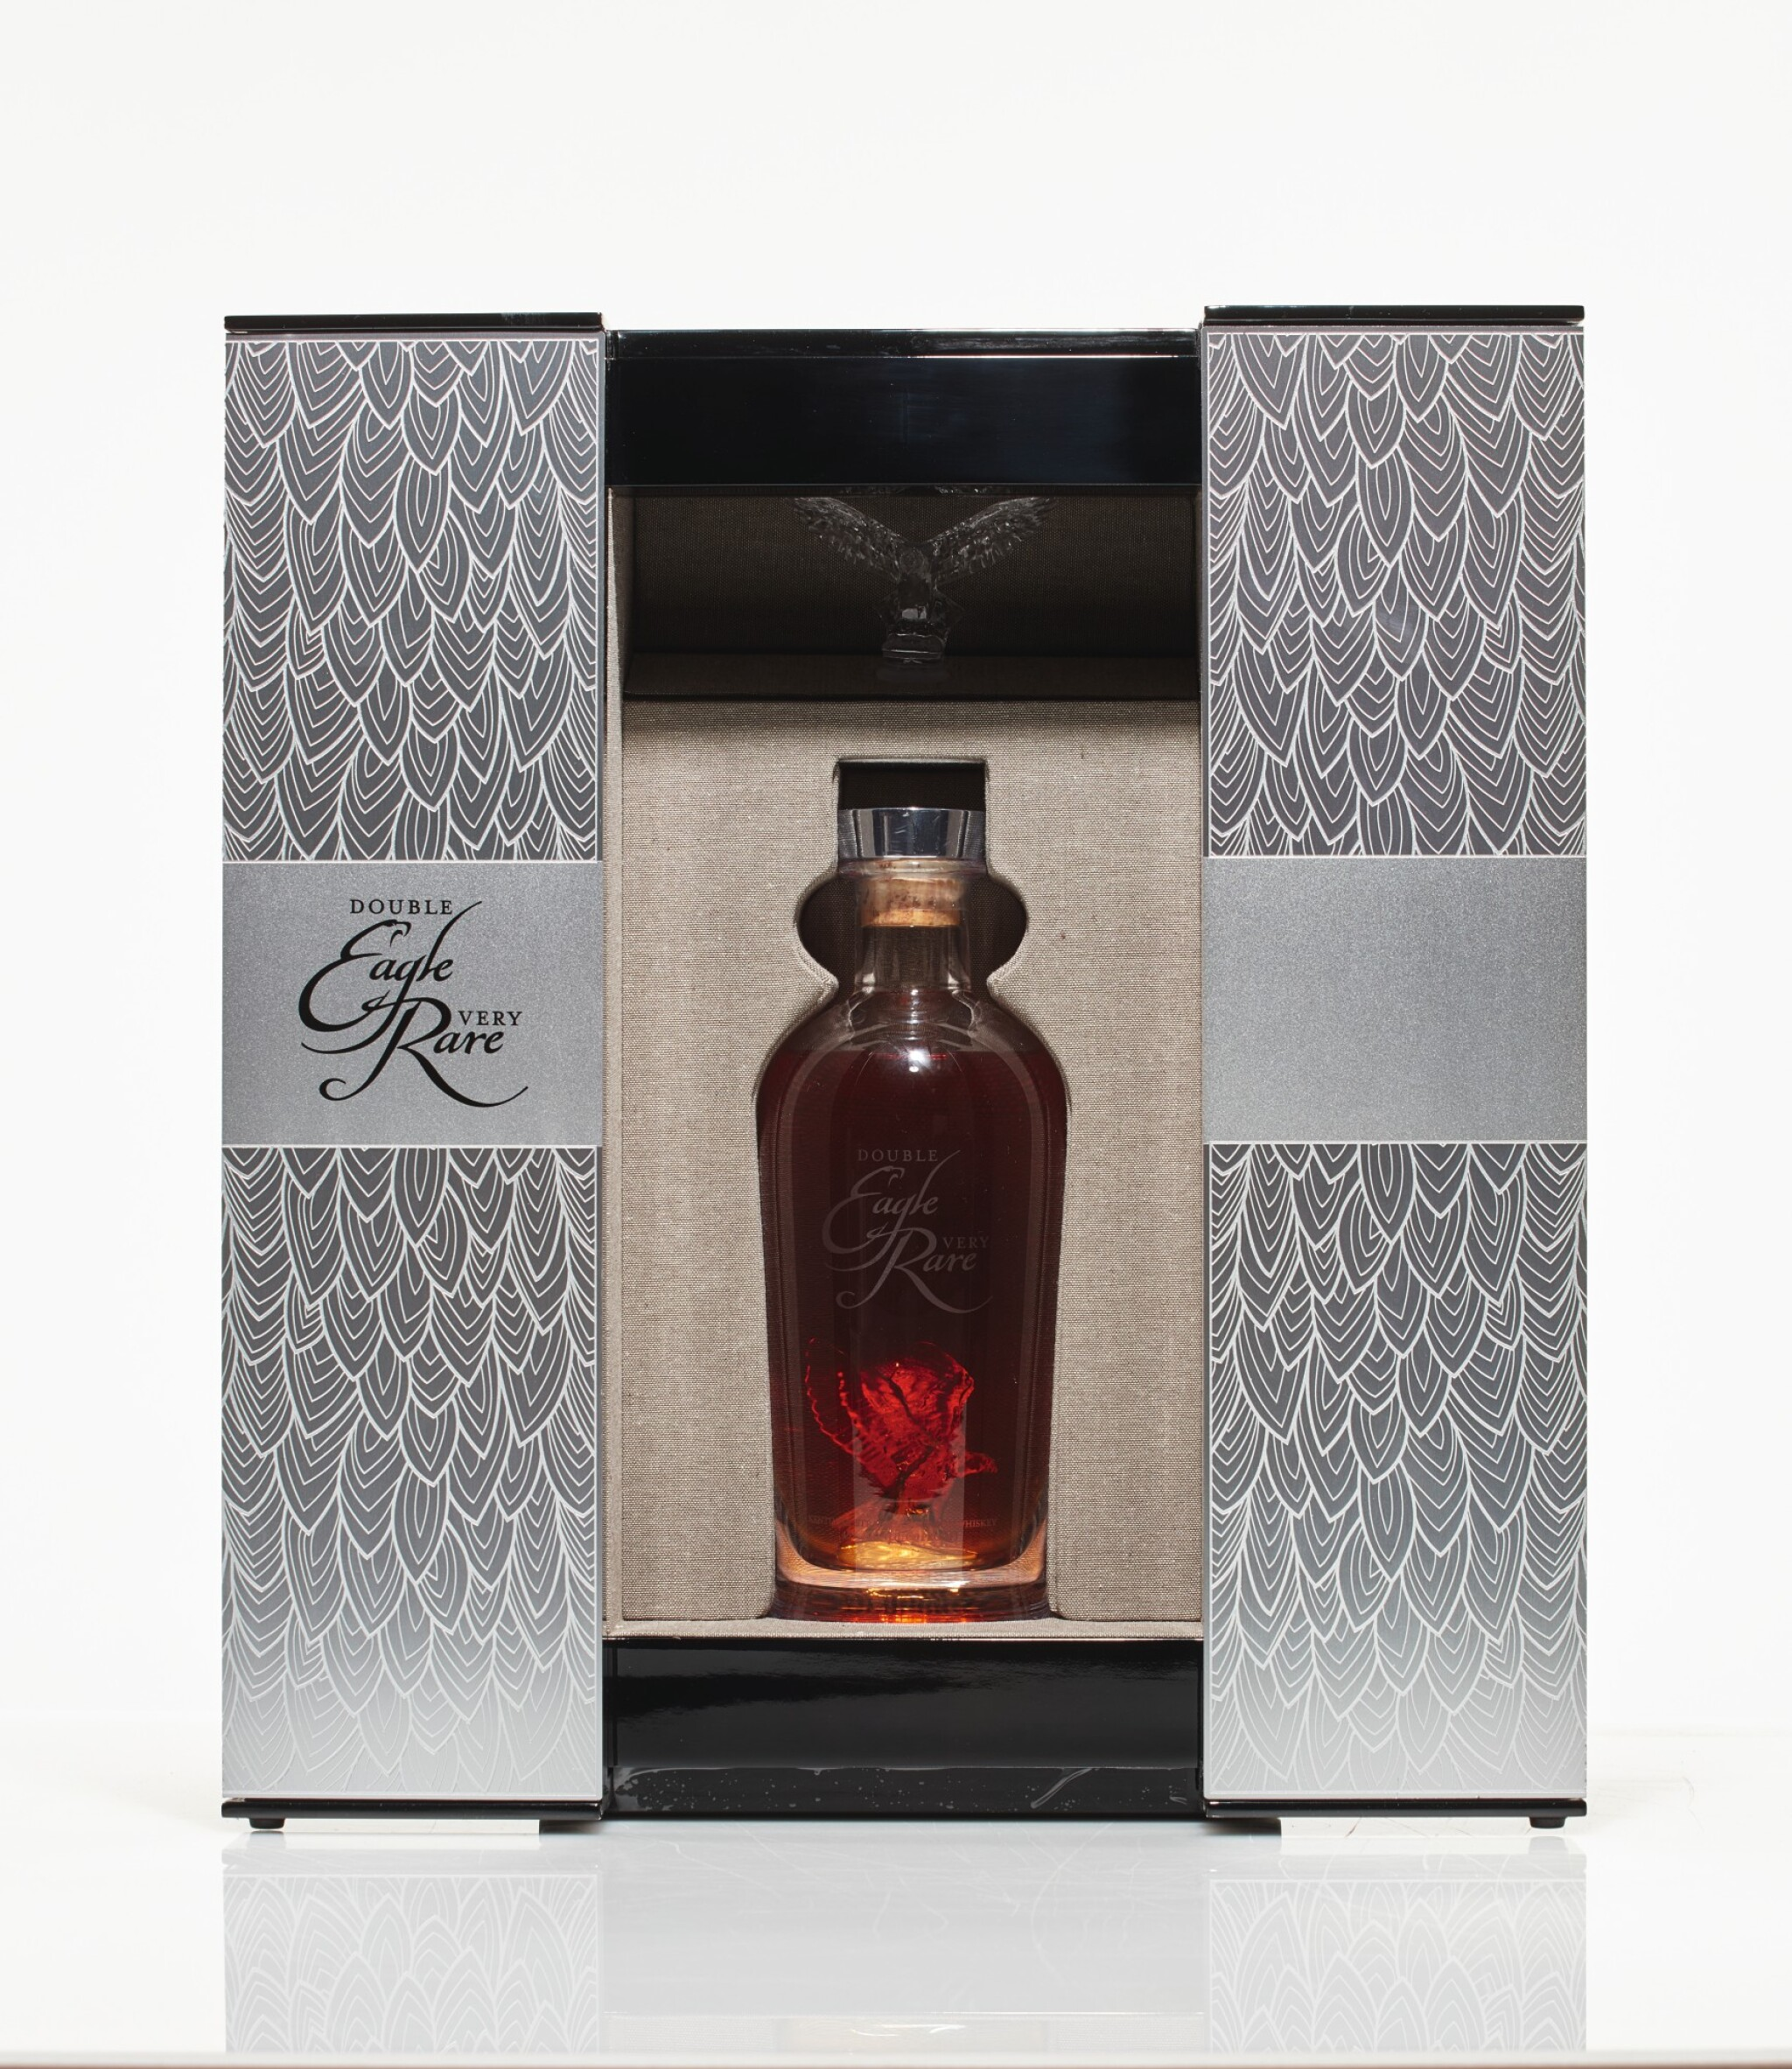 View full screen - View 1 of Lot 67. Double Eagle Very Rare Bourbon 45.0 abv NV (1 BT75cl).